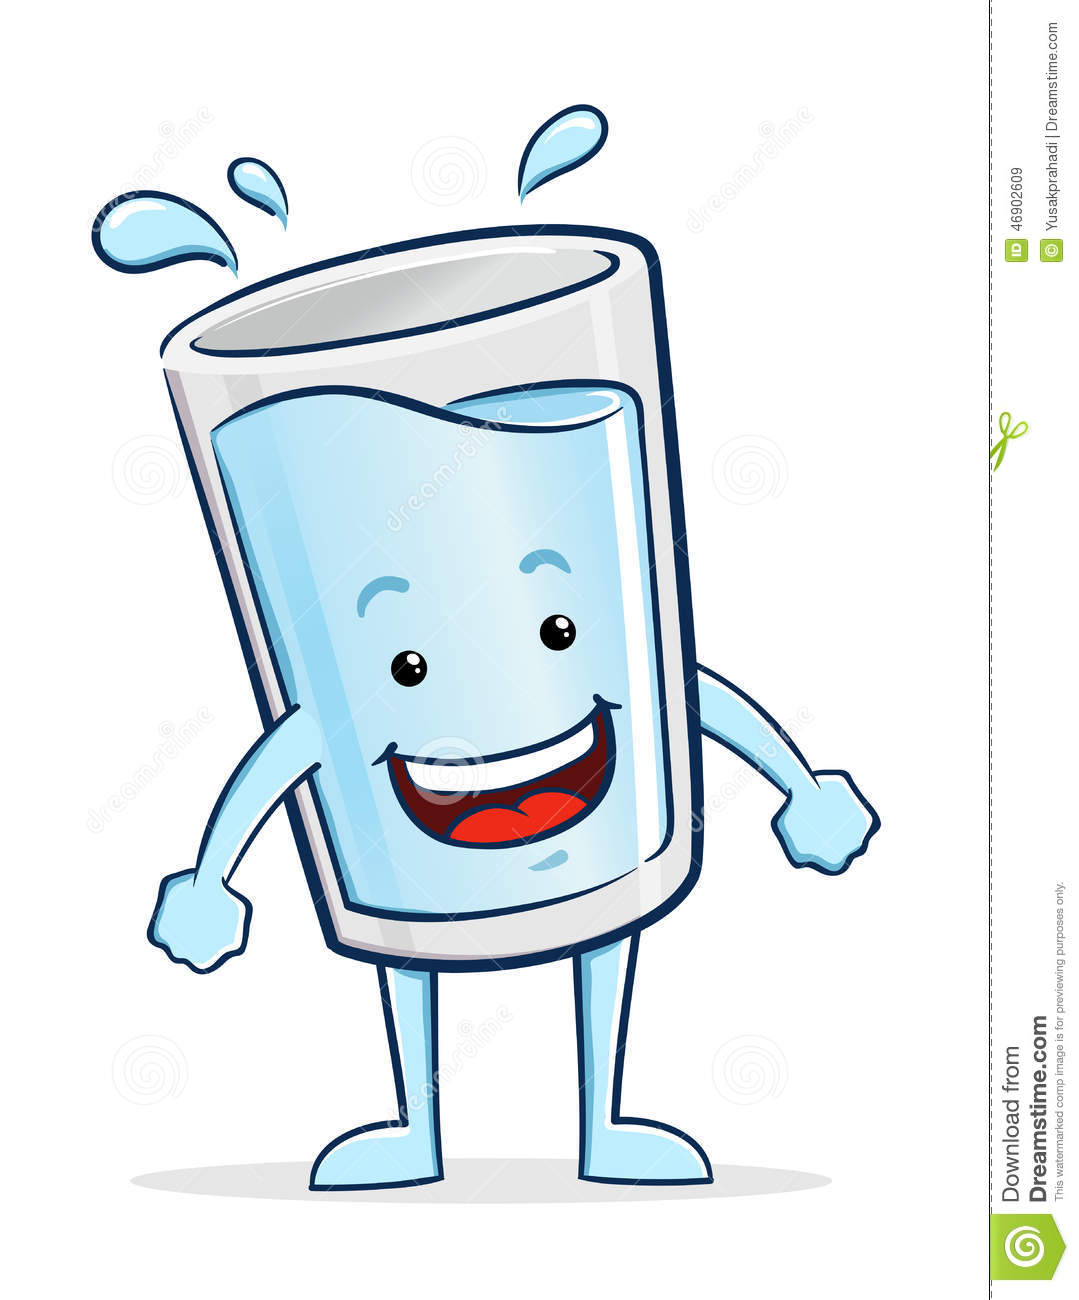 Vector illustration of a glass of water cartoon character.